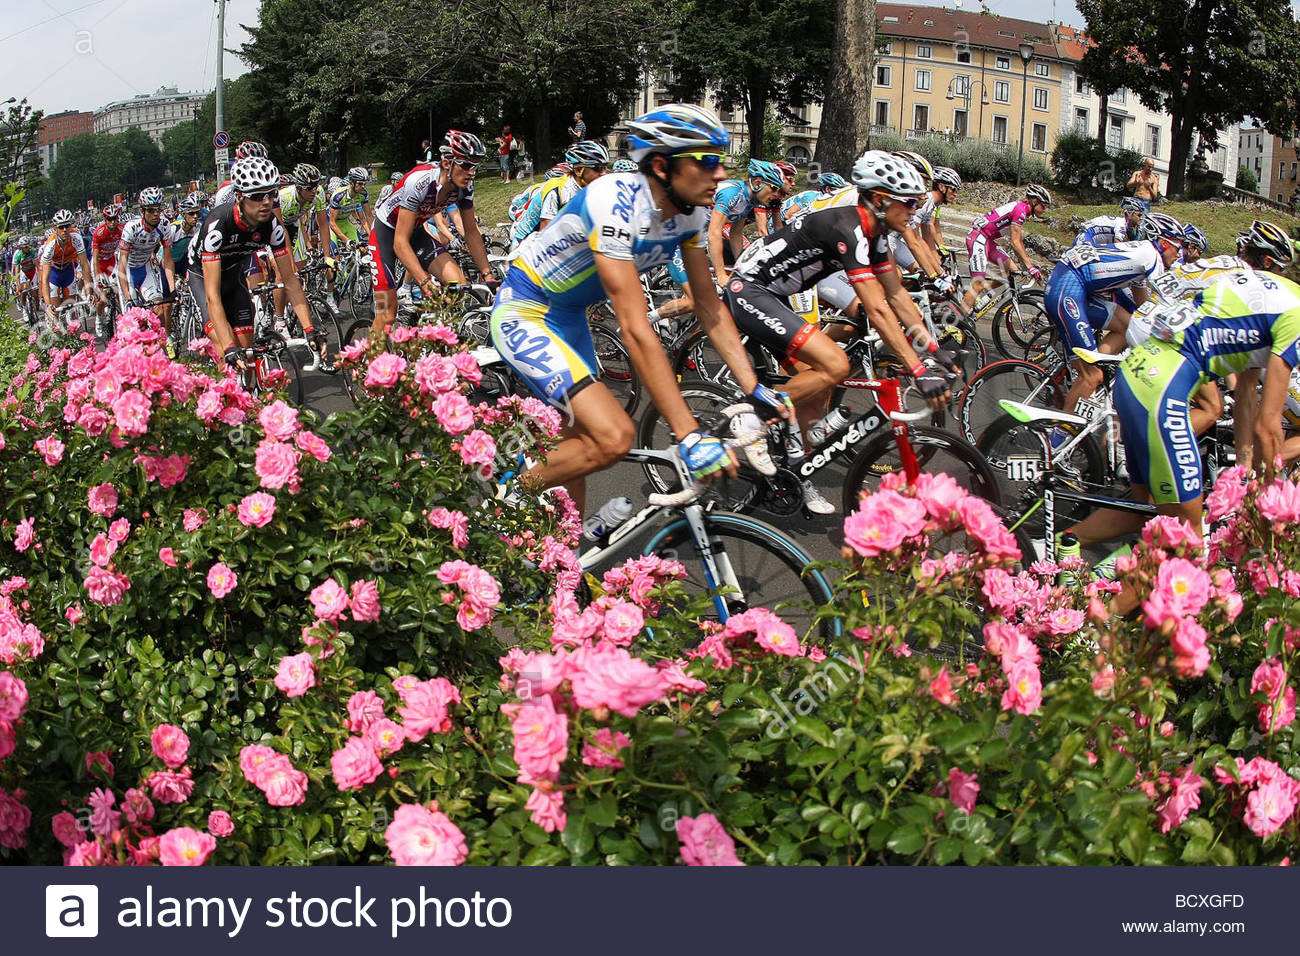 , milano 2009, 92nd giro d'italia, 9th stage milano show - Stock Image